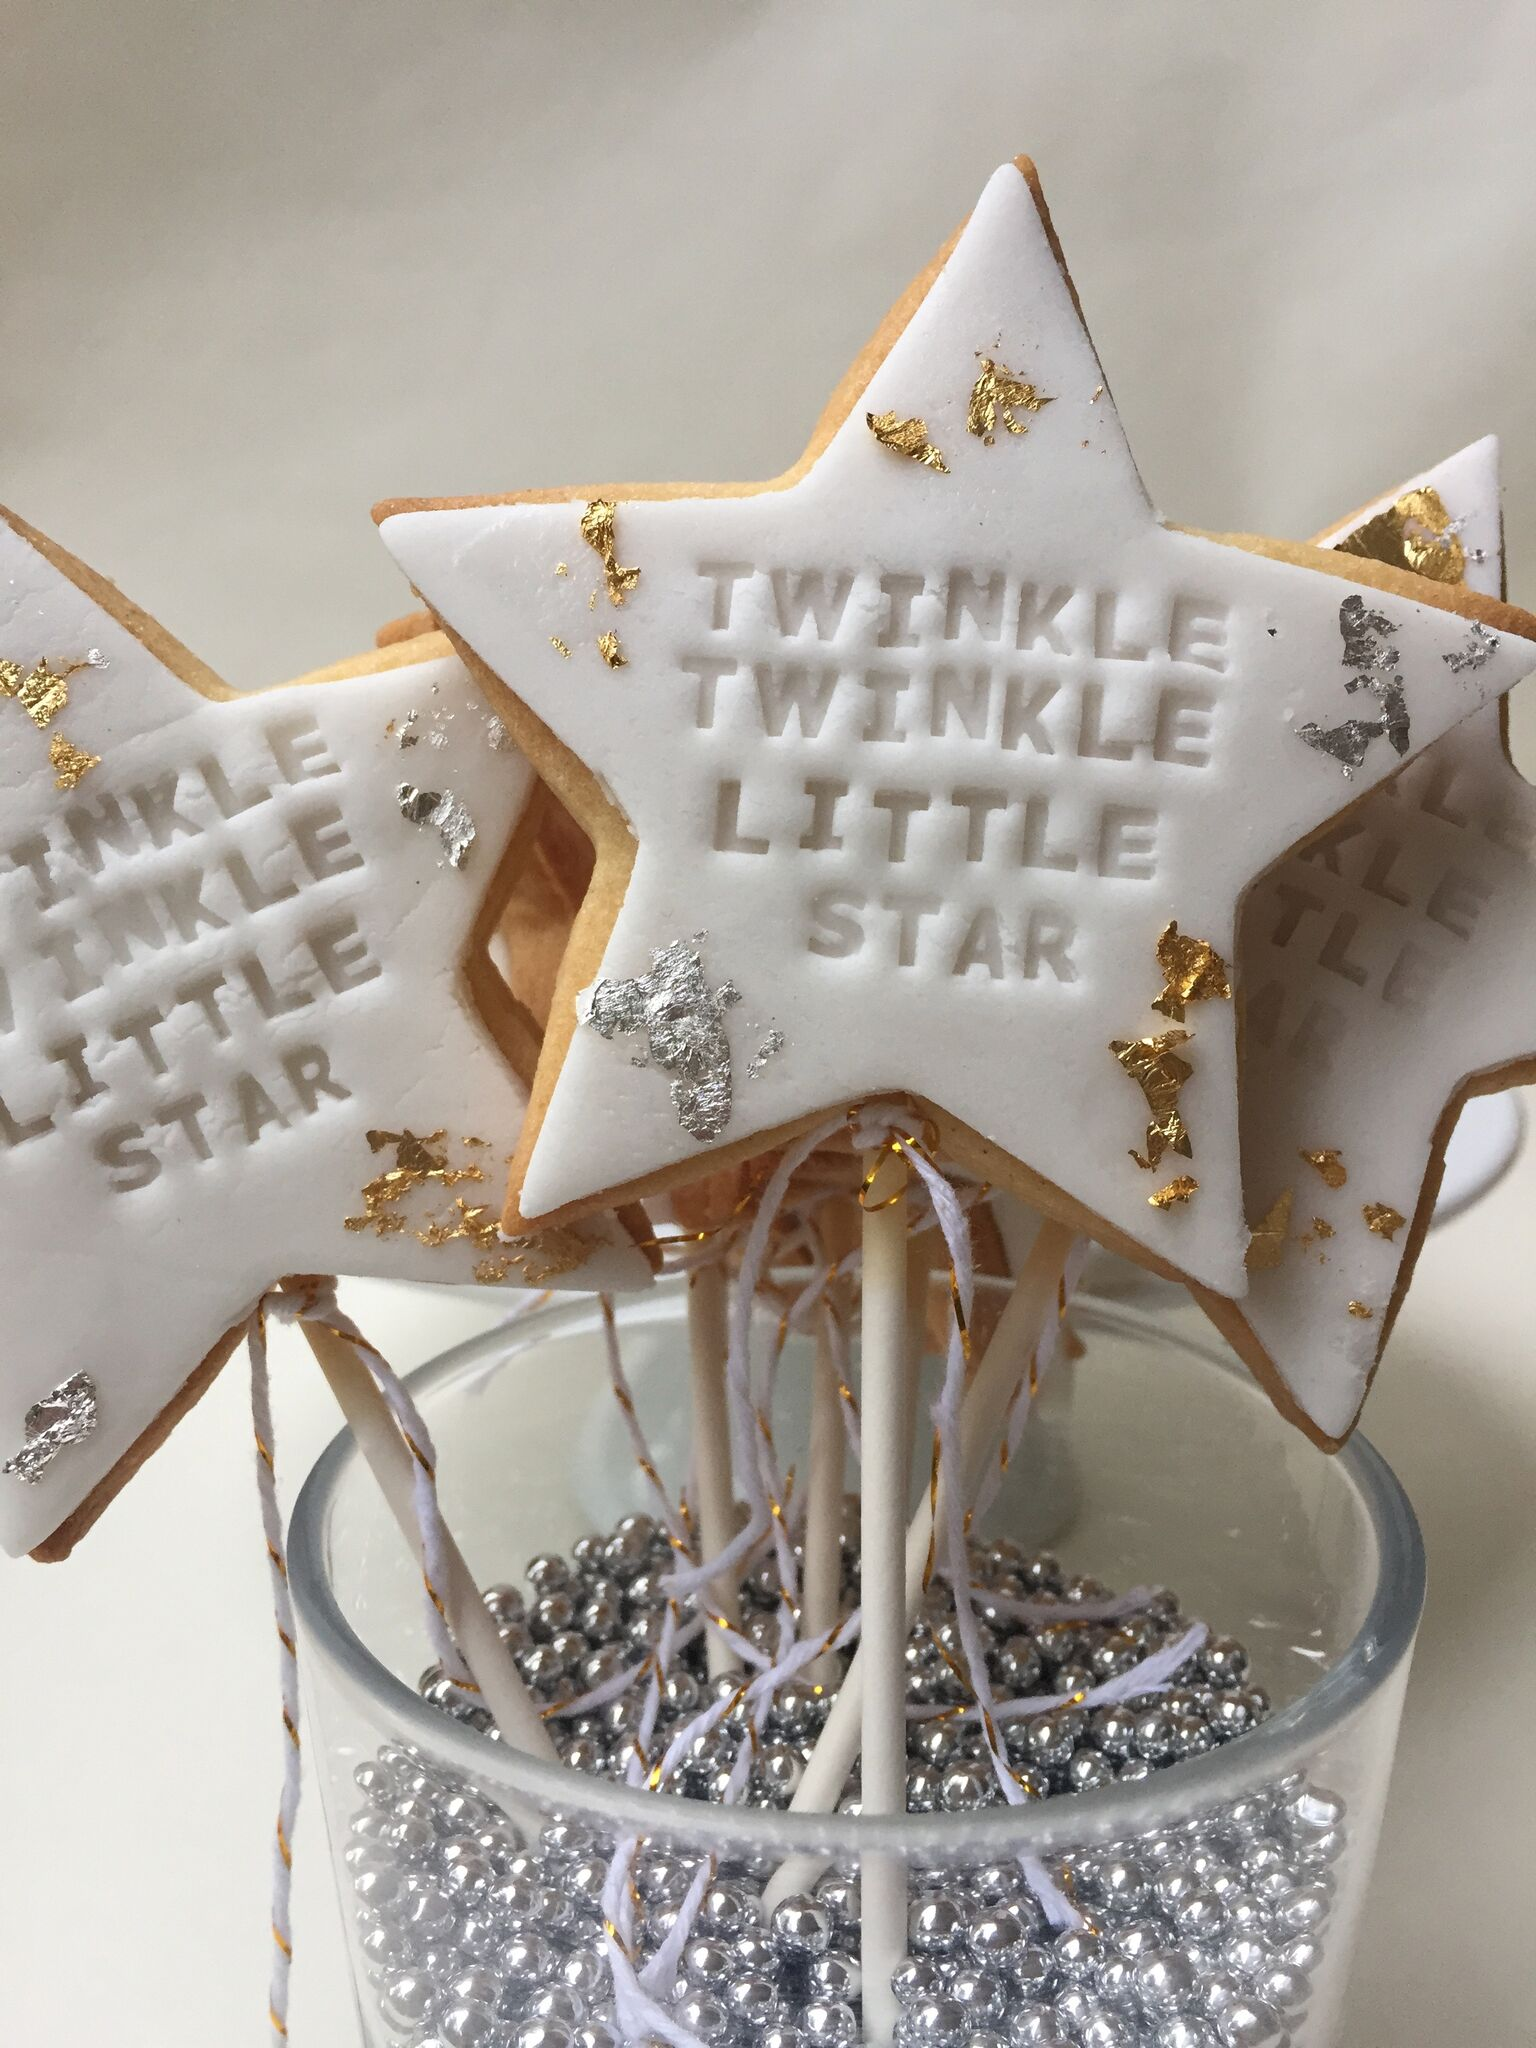 Twinkle Twinkle Little Star Themed Baby Shower - Star Themed Cookie Pops.jpg